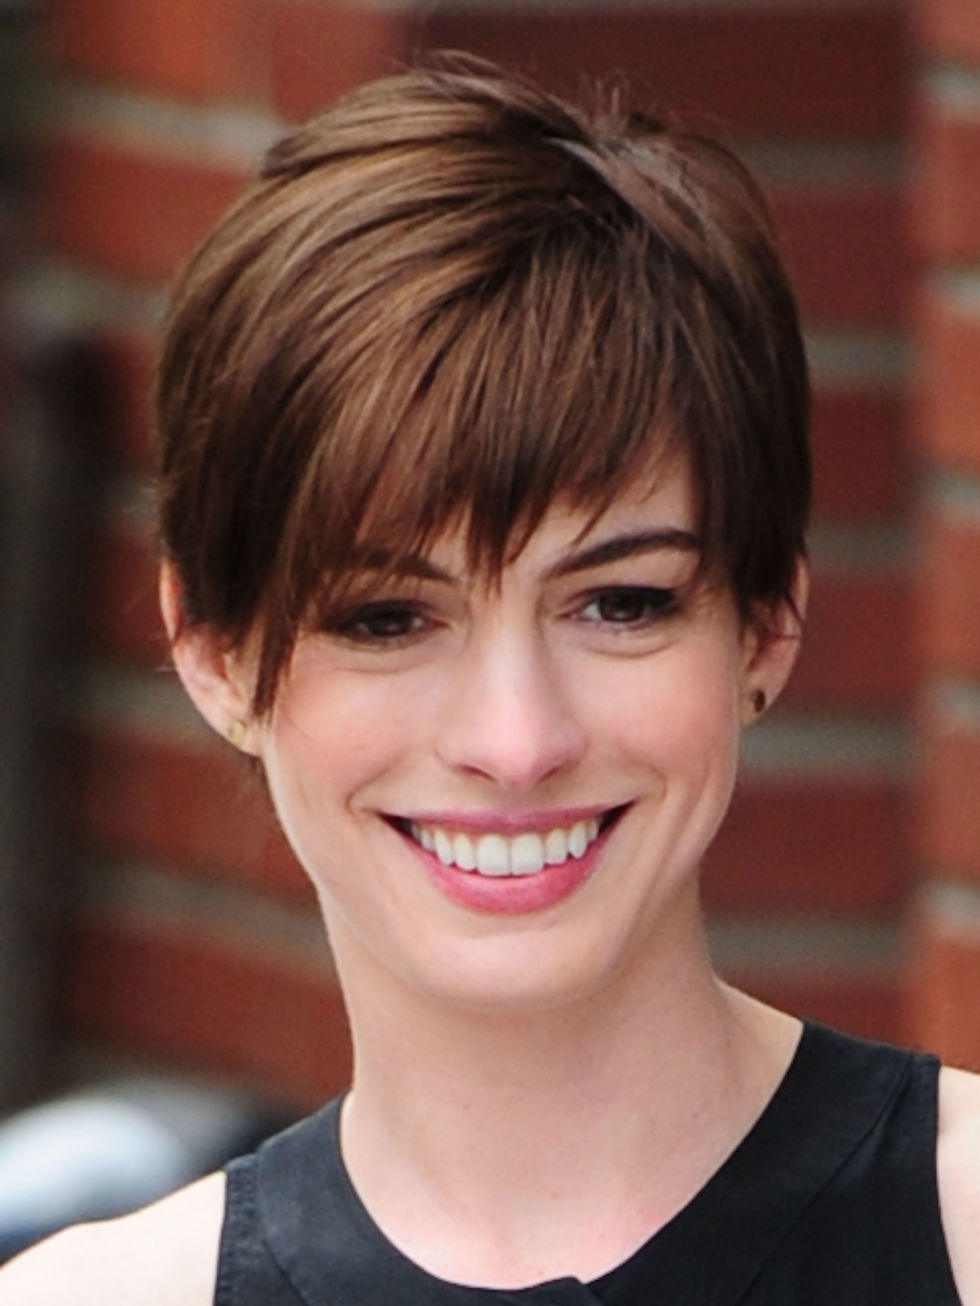 Phenomenal Growing Out Short Hair Hairstyles For Growing Out Hair Short Hairstyles Gunalazisus